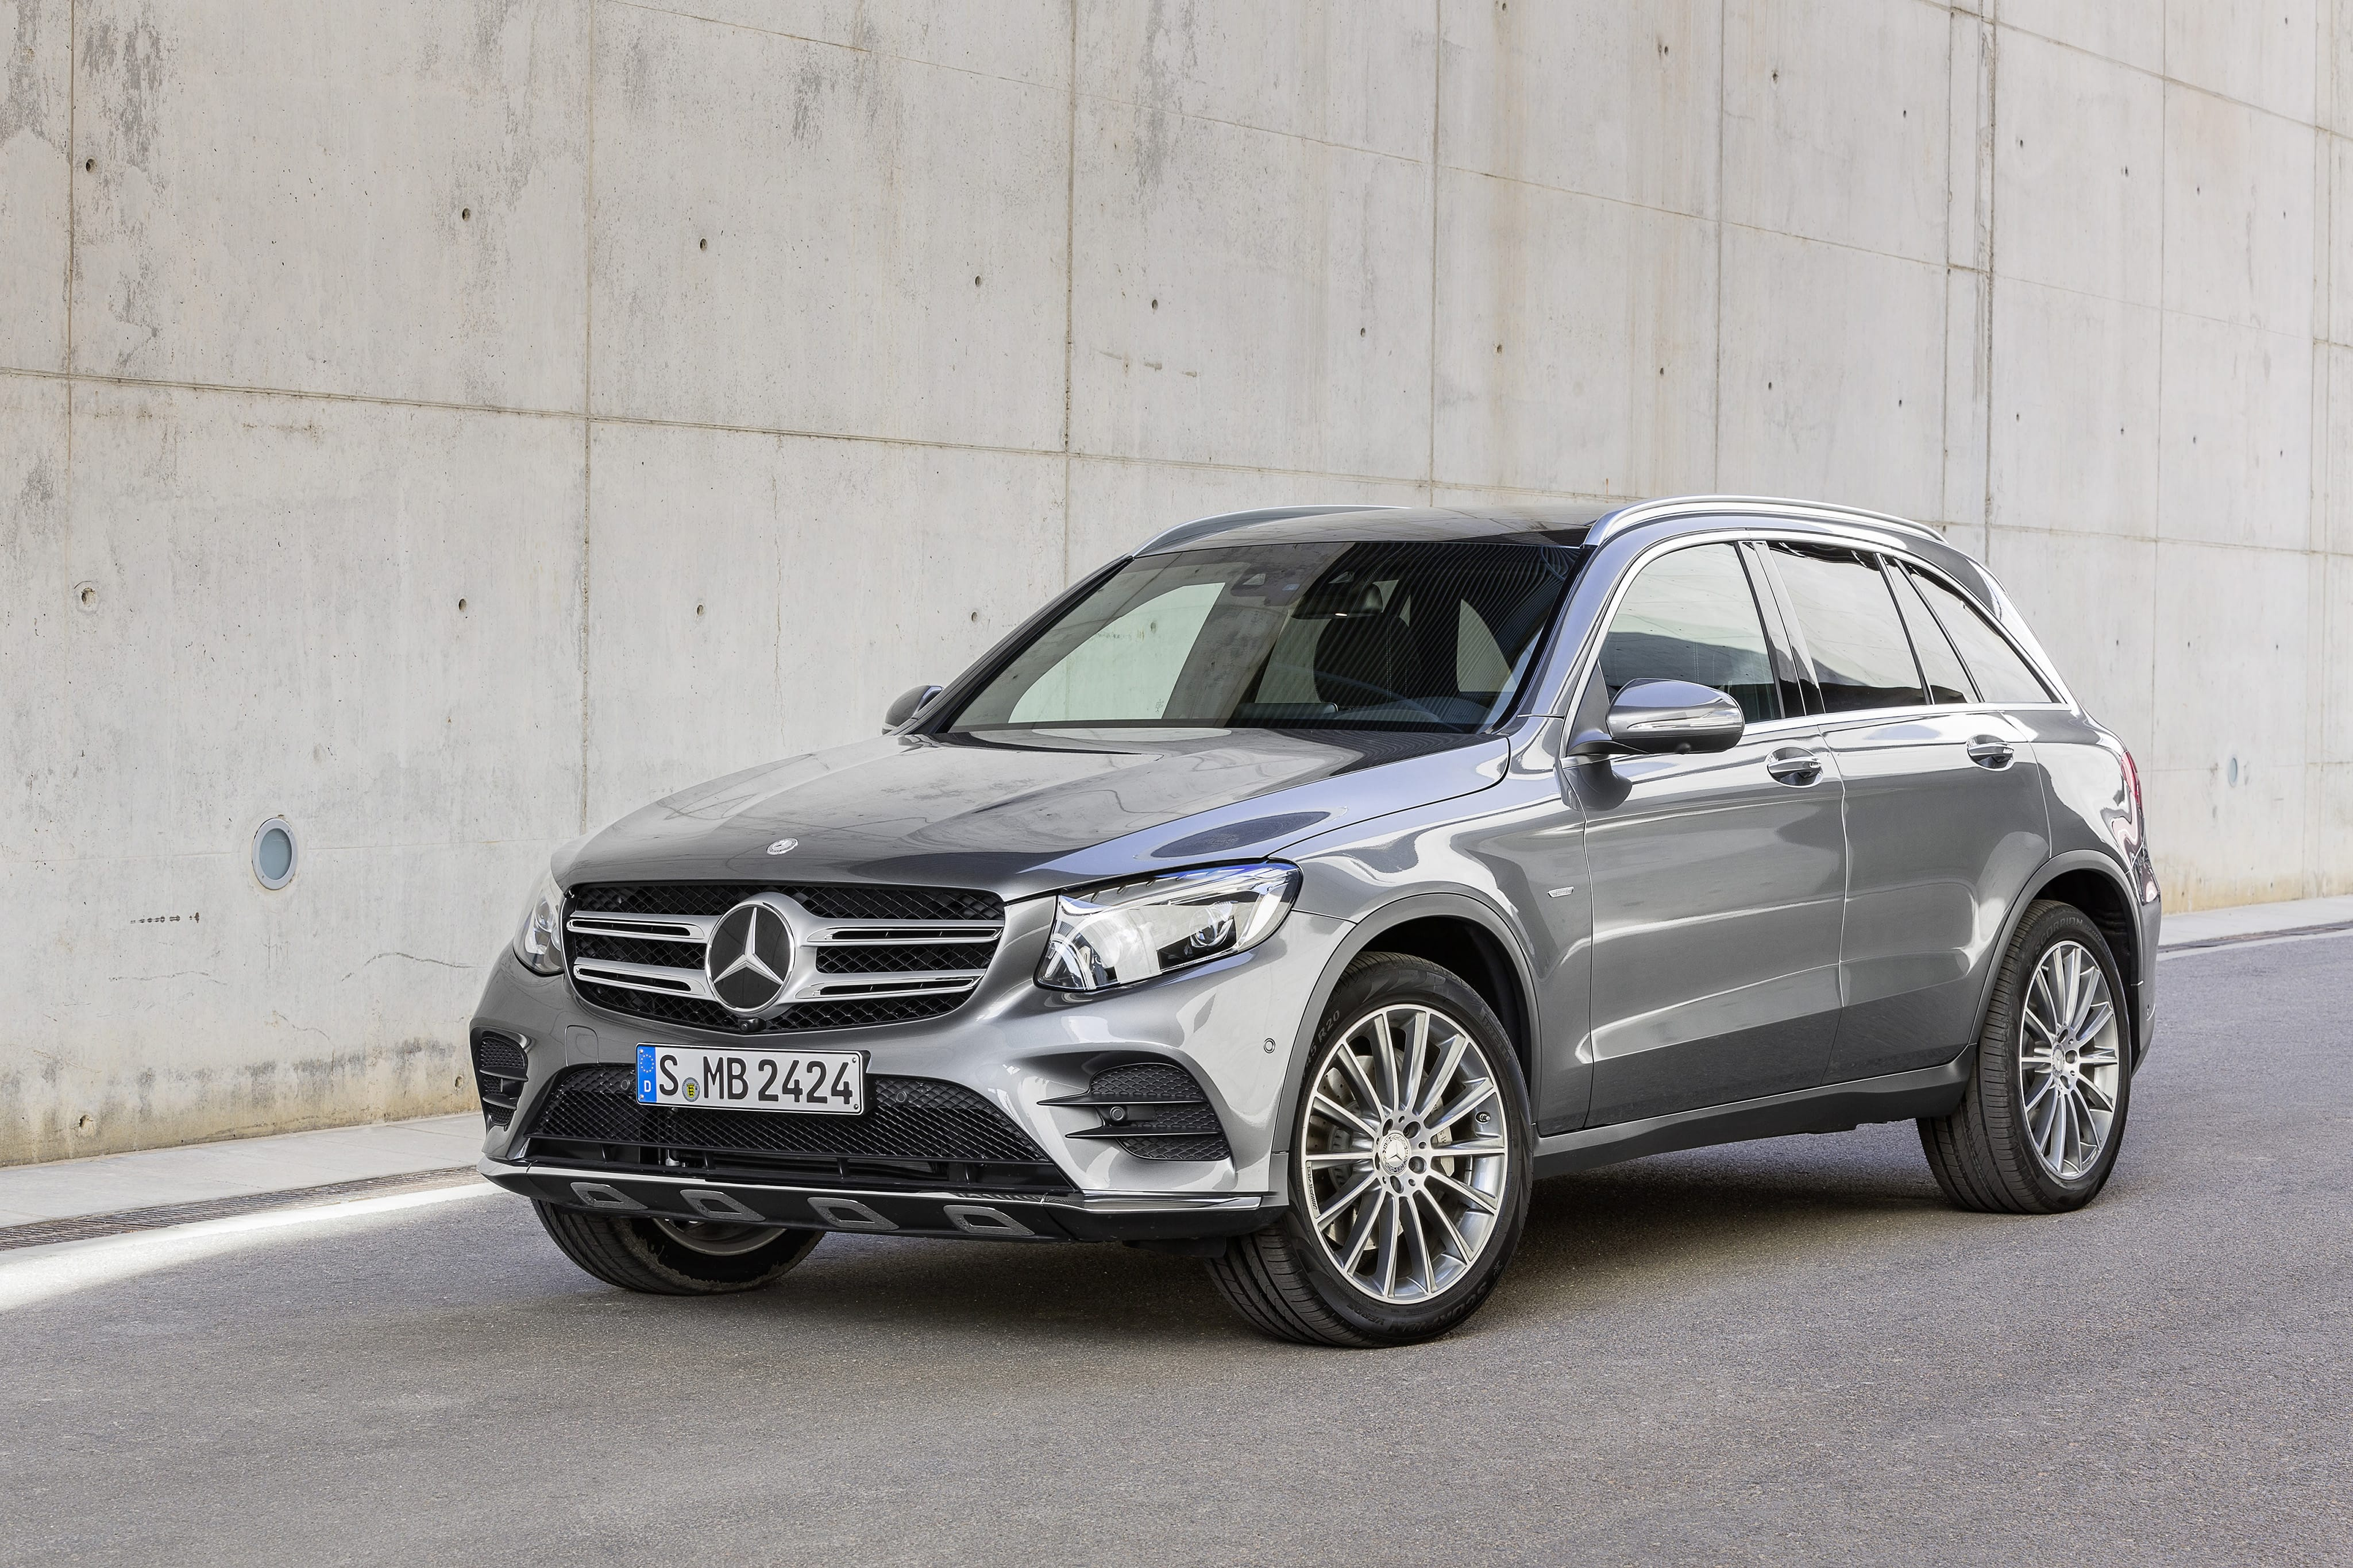 Mercedes GLC Full hd wallpapers